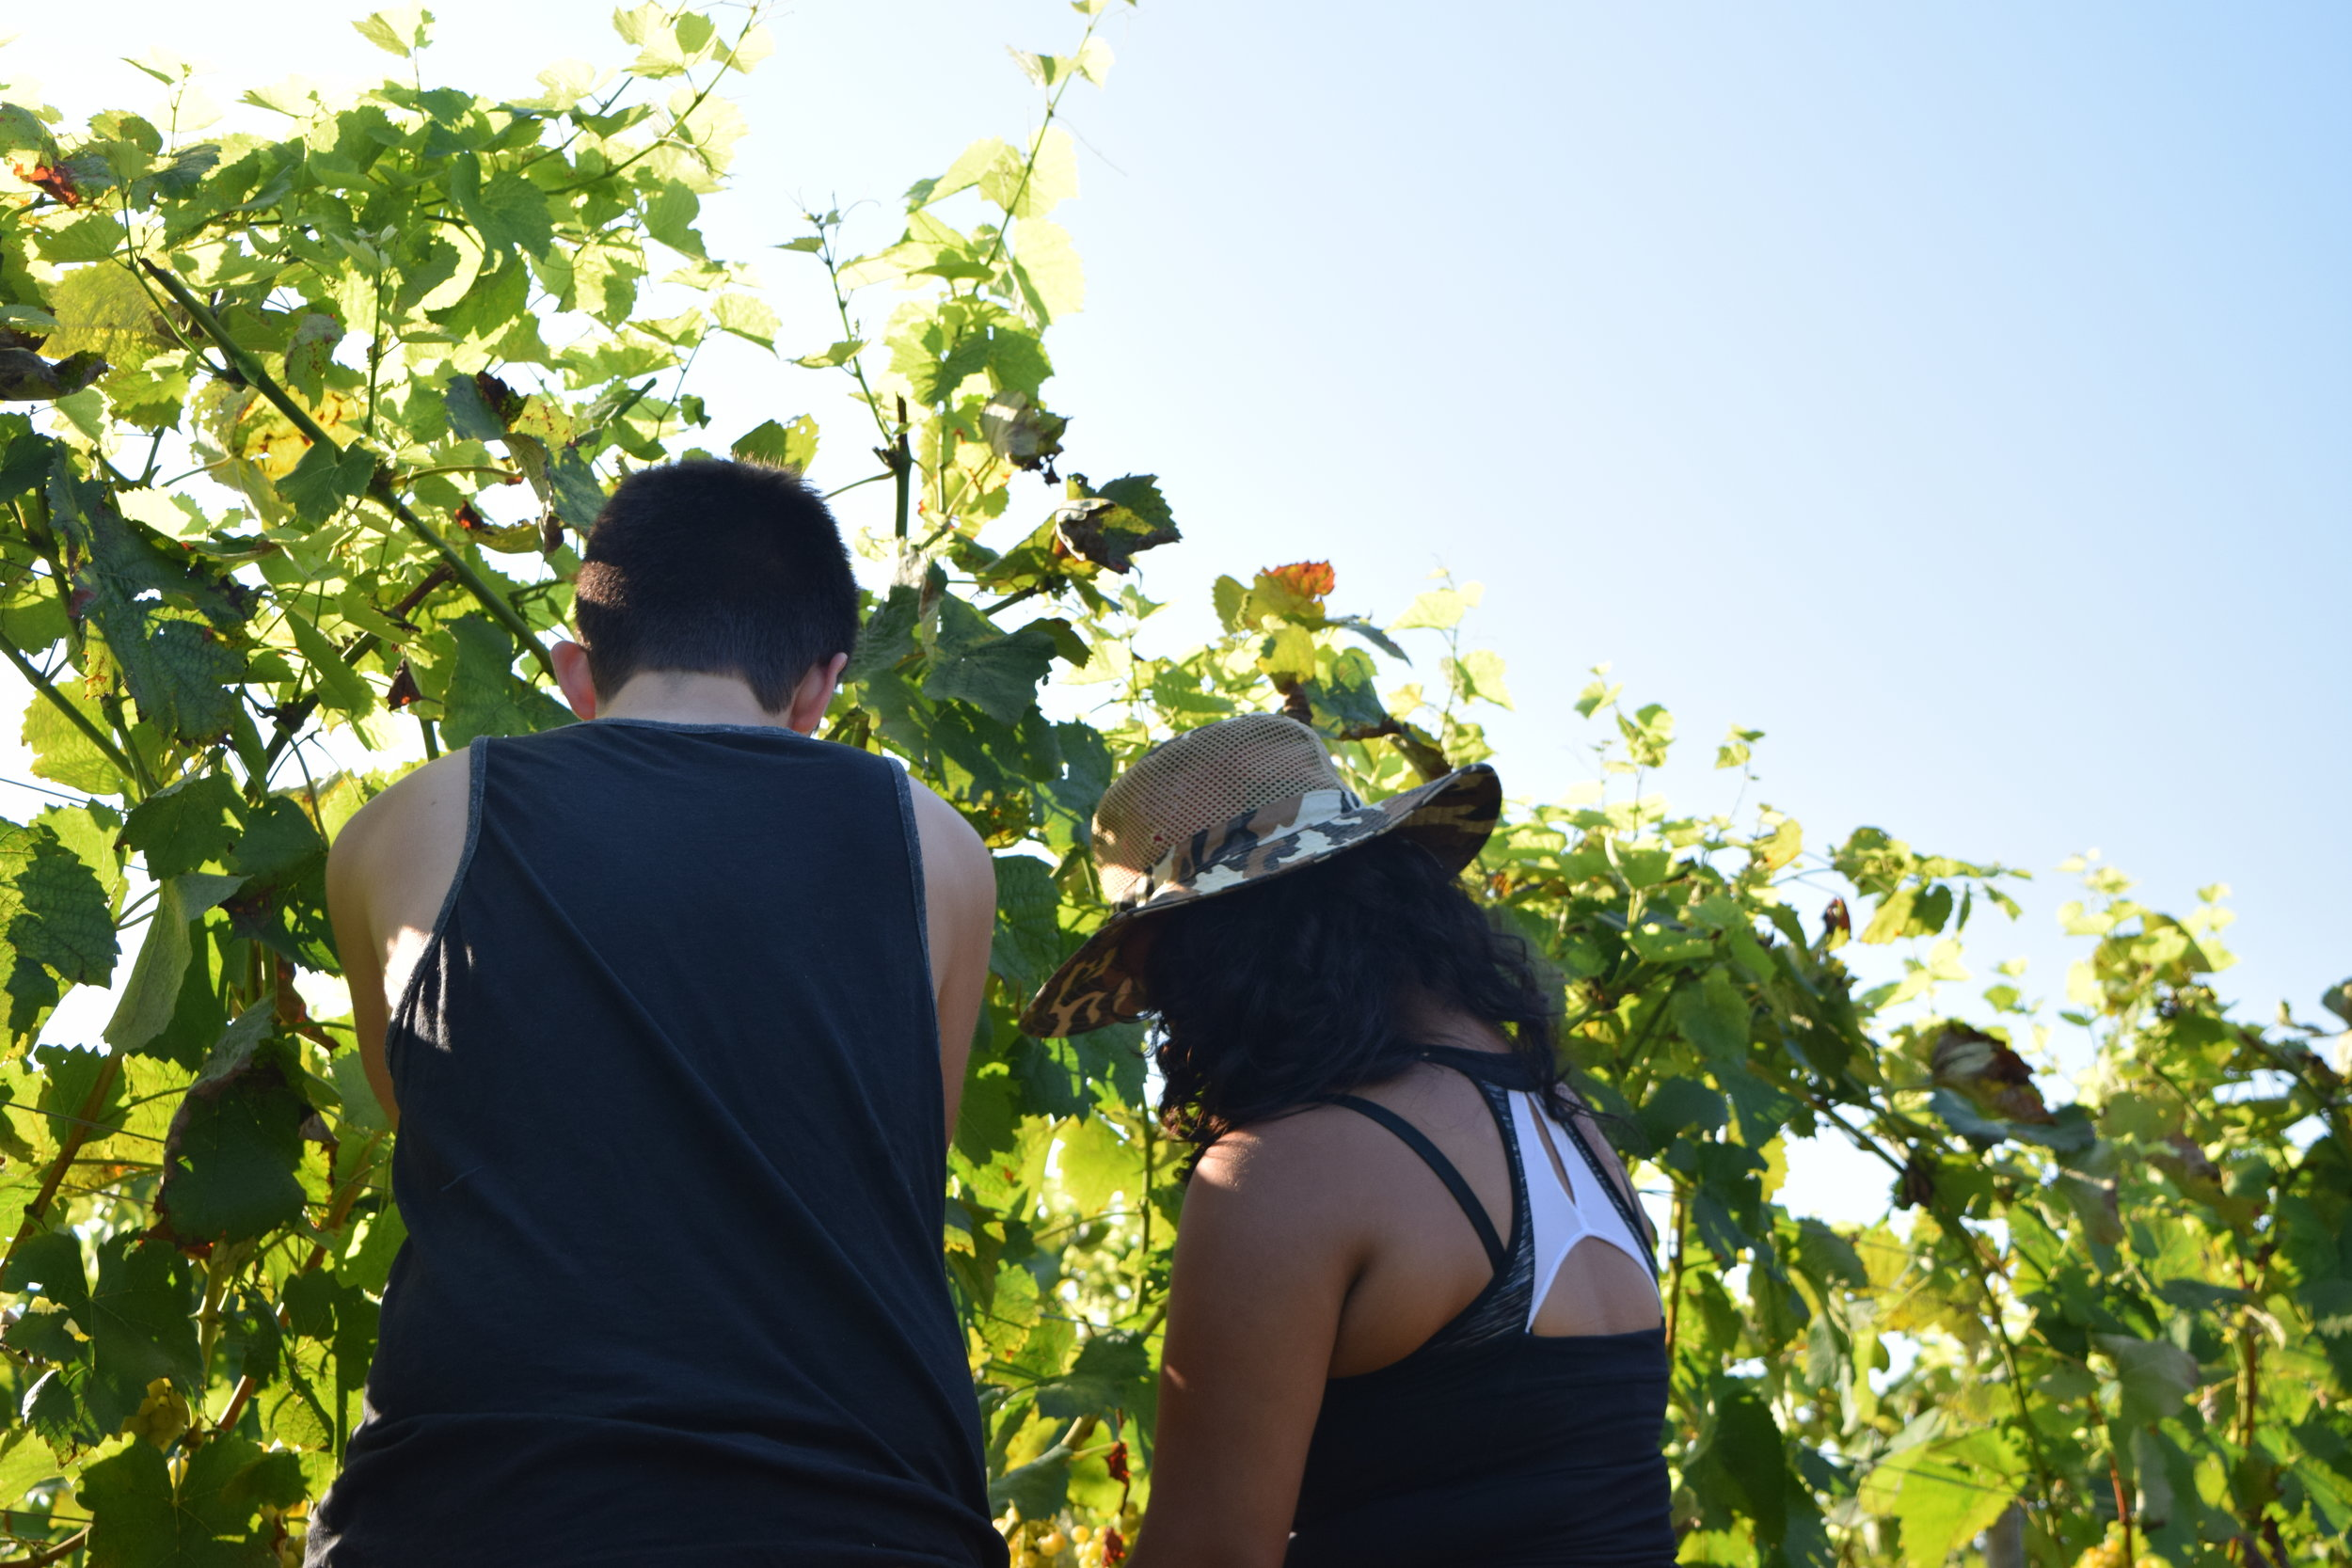 There is a local vineyard in our area and we have picked grapes for them several times.